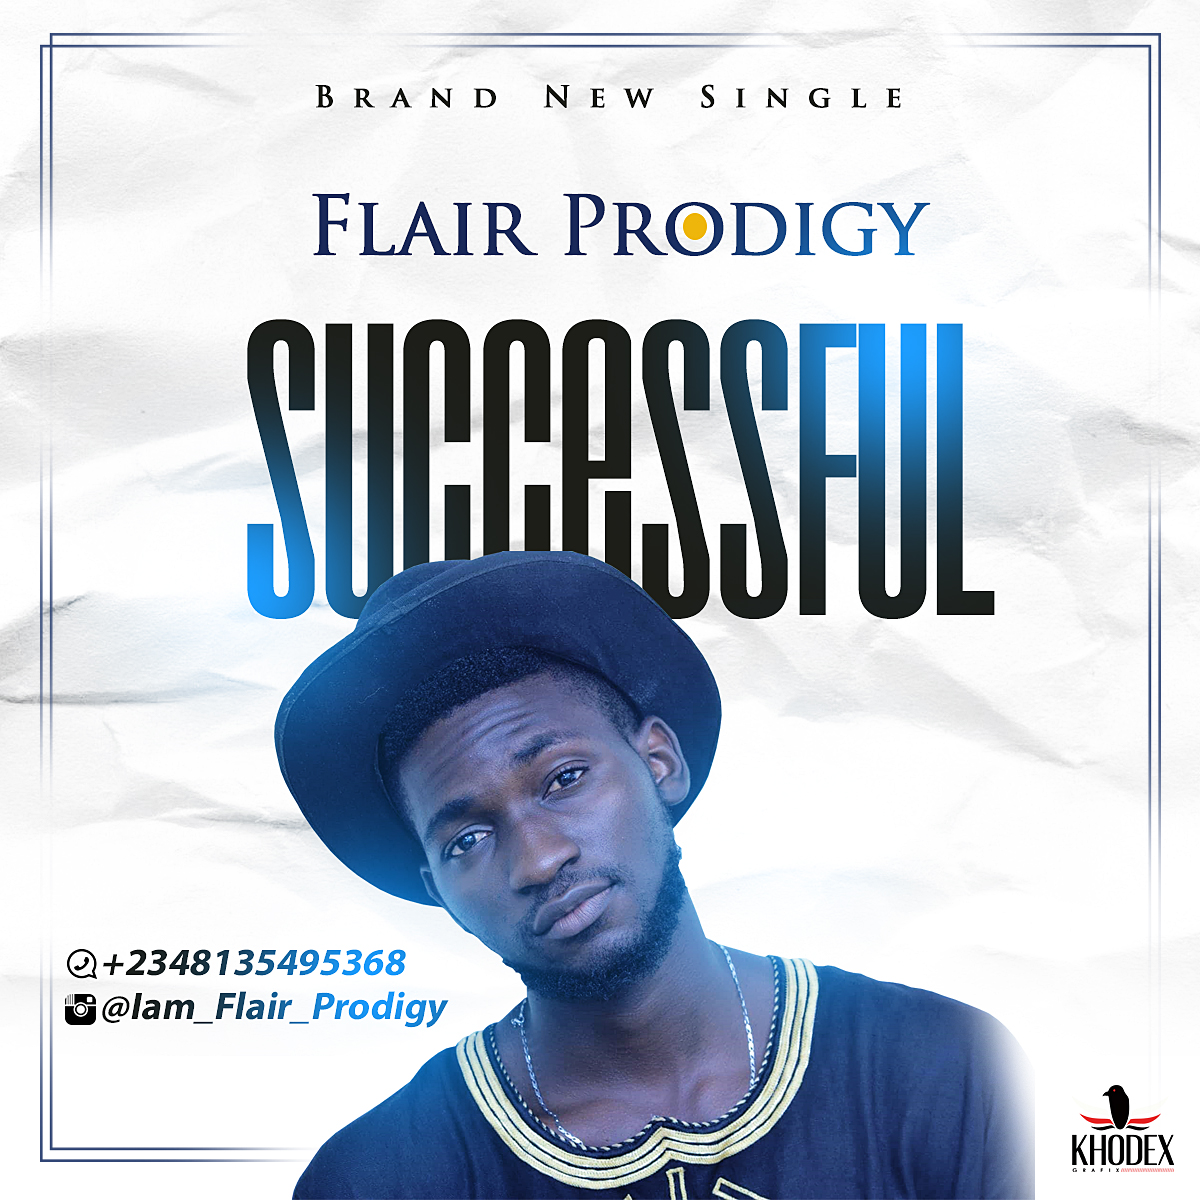 FLAIR PRODIGY ART - MUSIC: Flair Prodigy - Successful